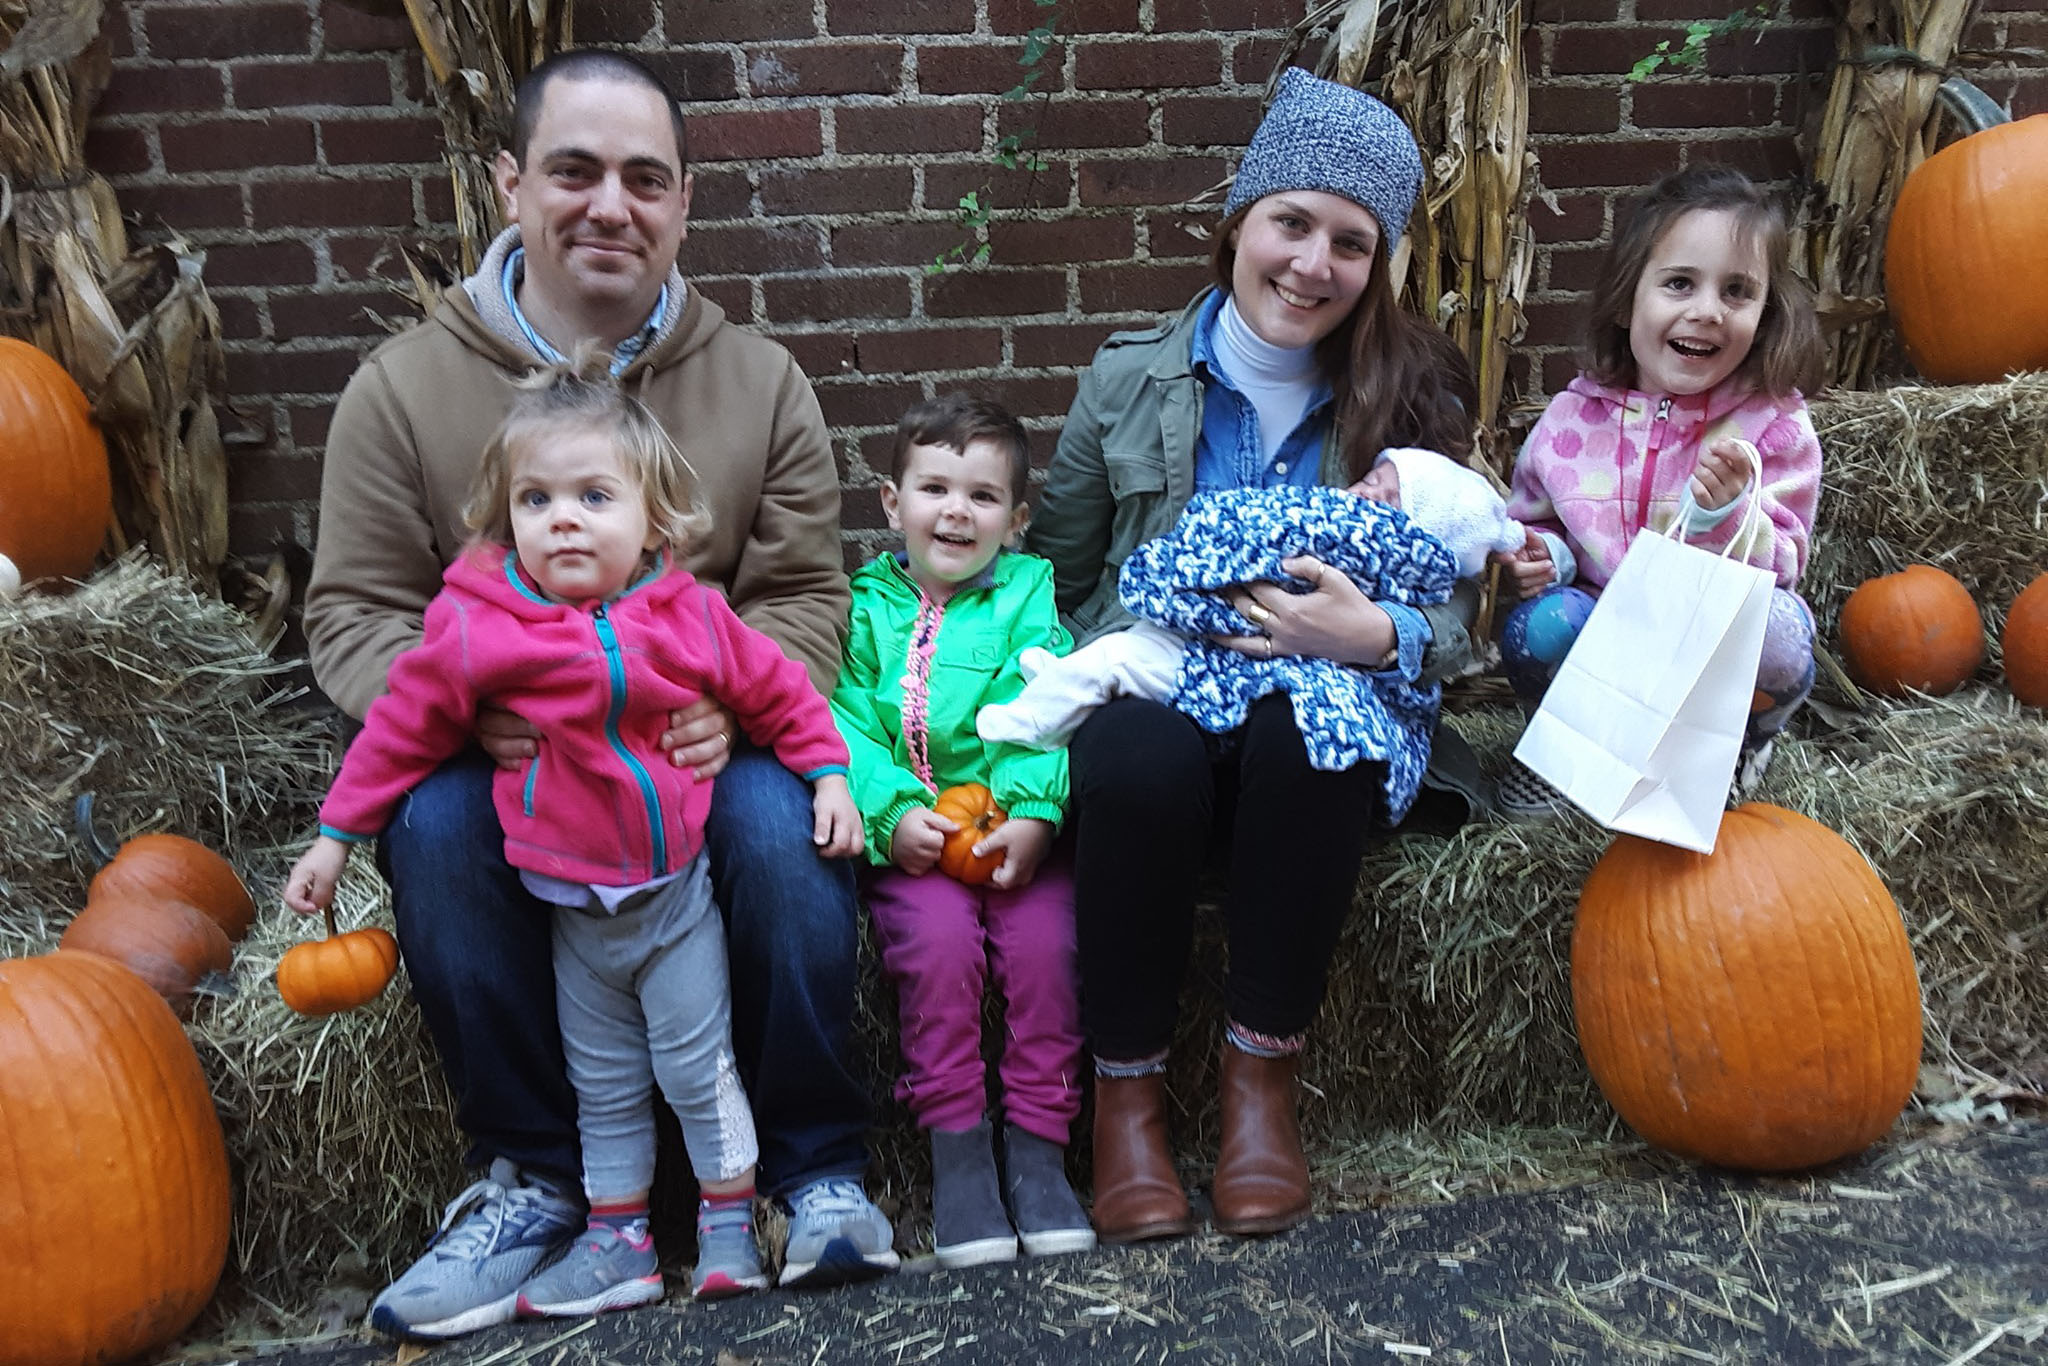 Caption: Former servicemember Stephen Kennedy, pictured with his wife Catherine and four children, sued after he received an other-than-honorable discharge from the Army., Credit: Courtesy Stephen Kennedy